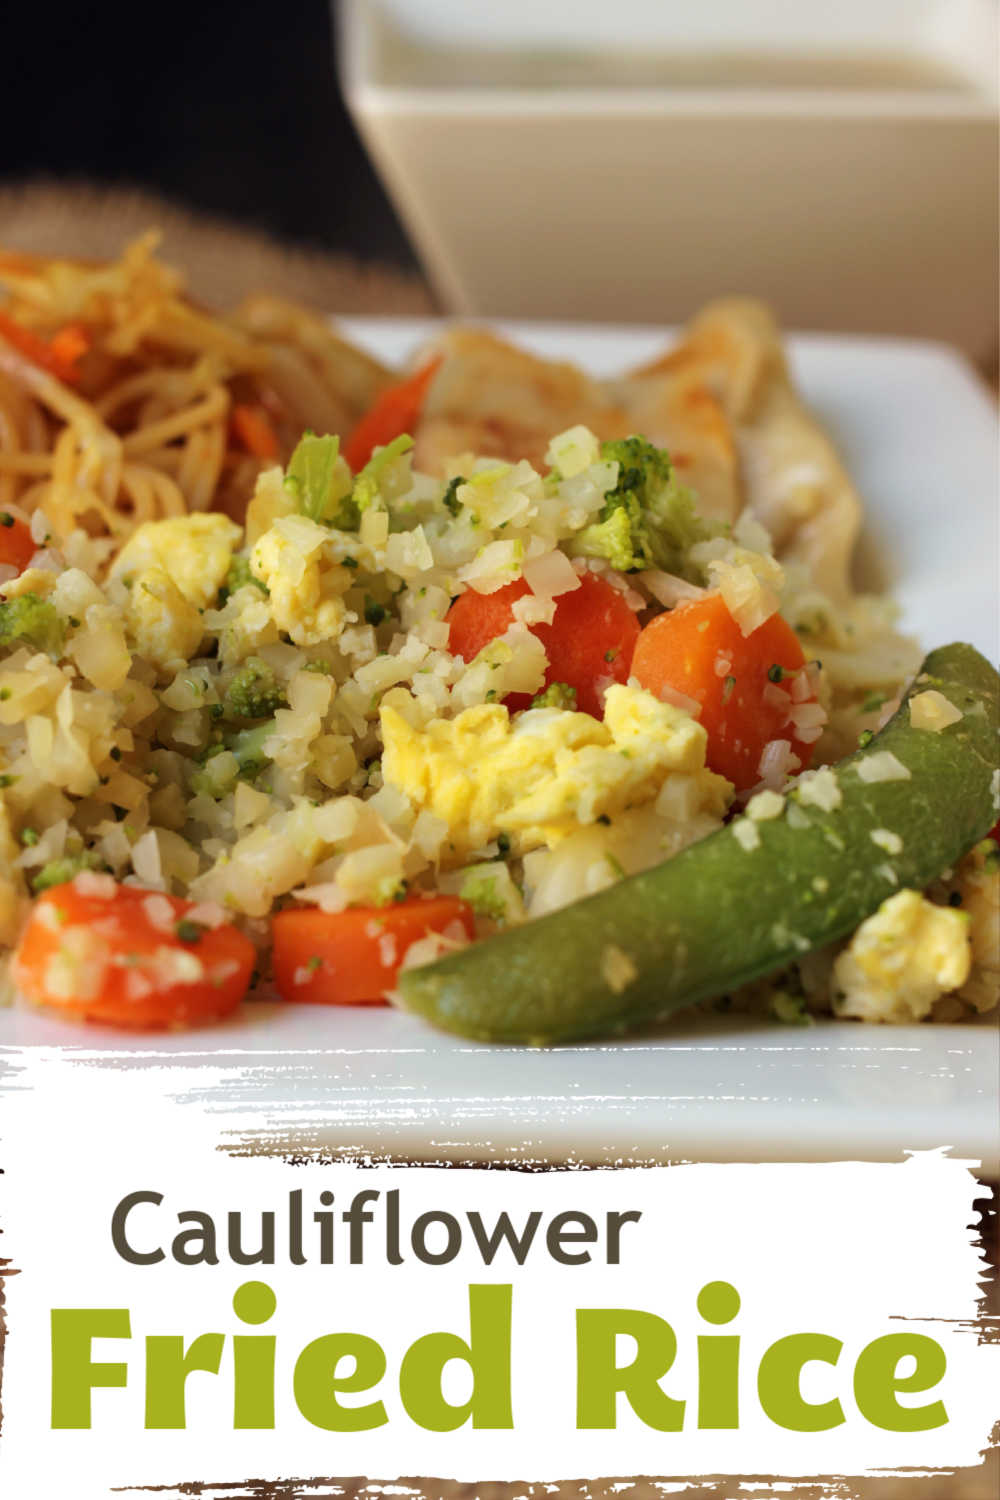 A dish is filled with Cauliflower and veggies